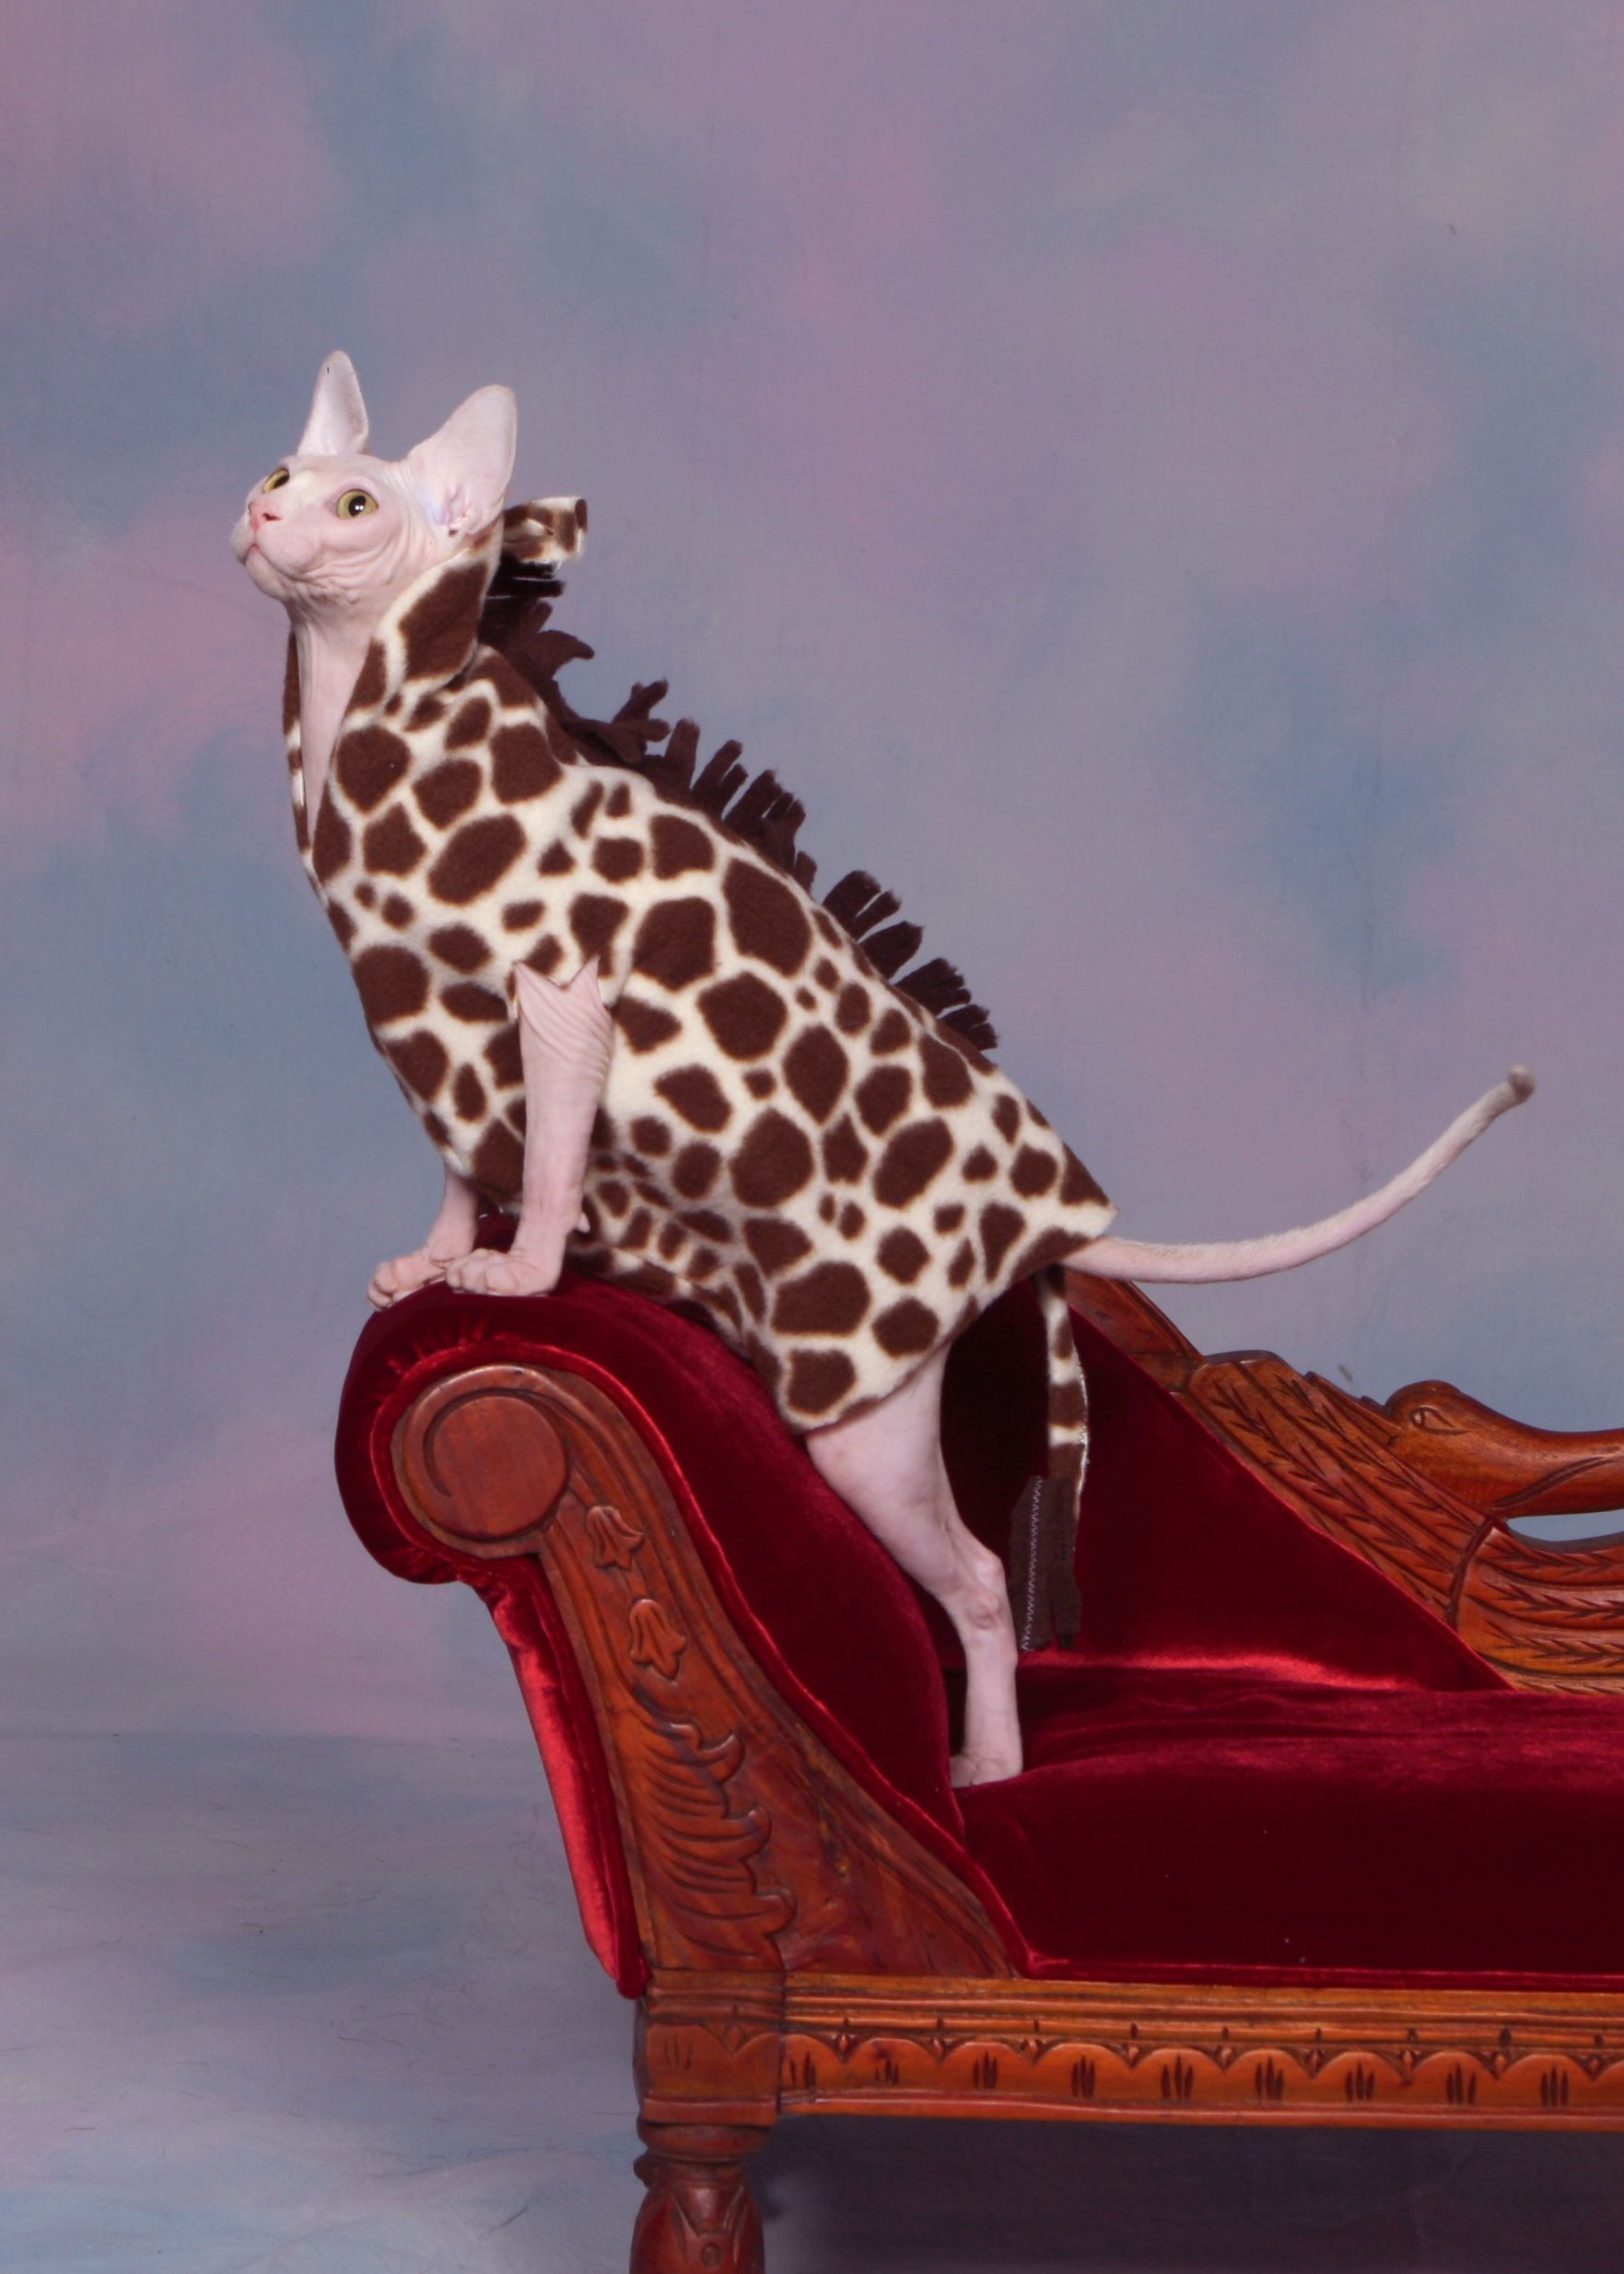 Pinky In Her Giraffe Outfit Thanks To Airie Mccready Sphynx Cat Sphynx Cat Clothes Cat Sweaters